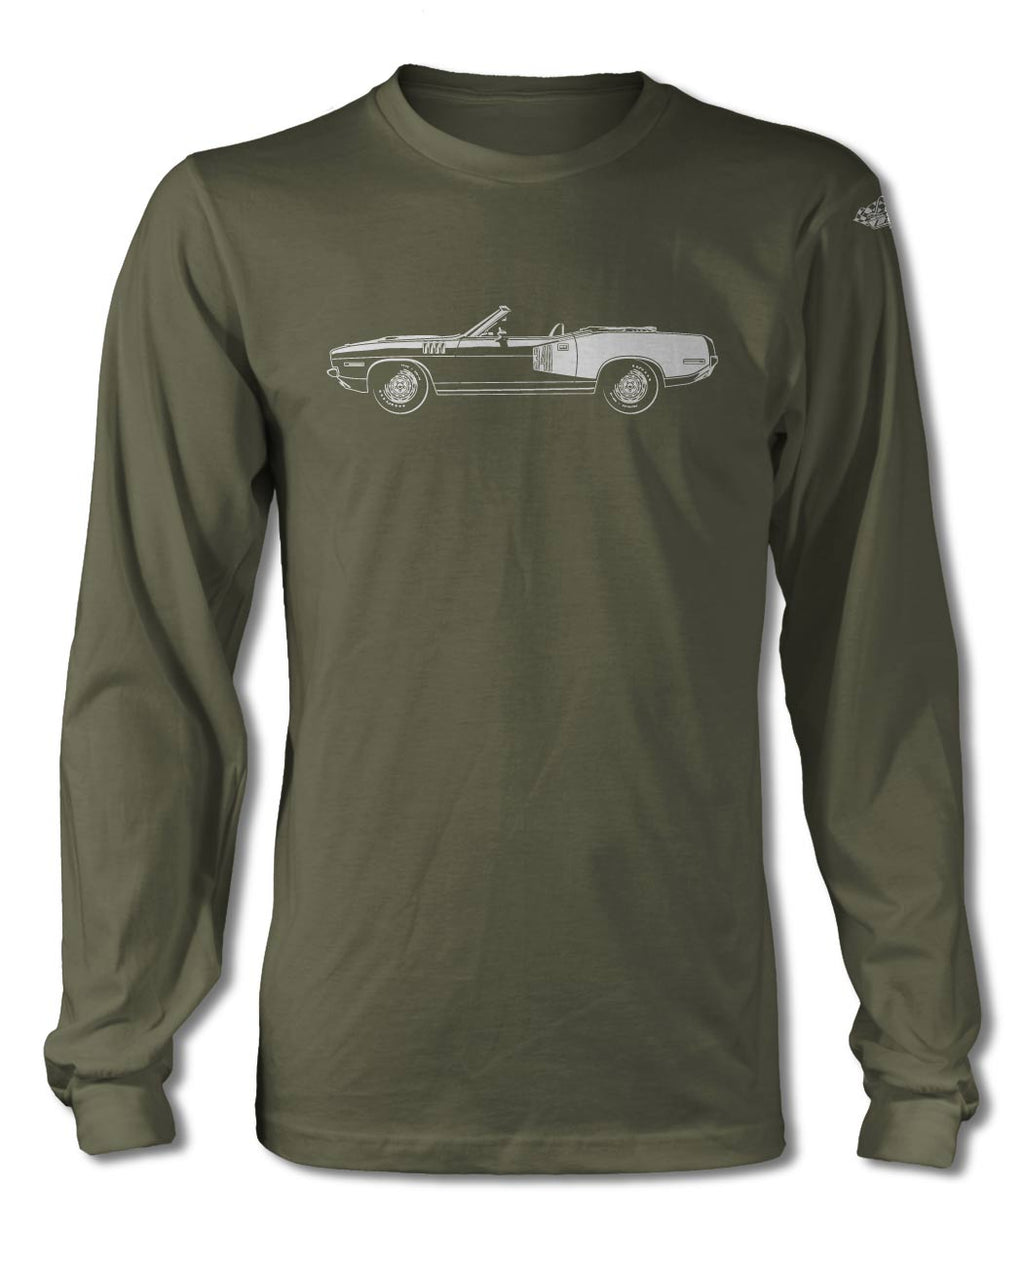 1971 Plymouth Barracuda 'Cuda 340 Convertible T-Shirt - Long Sleeve - Side View